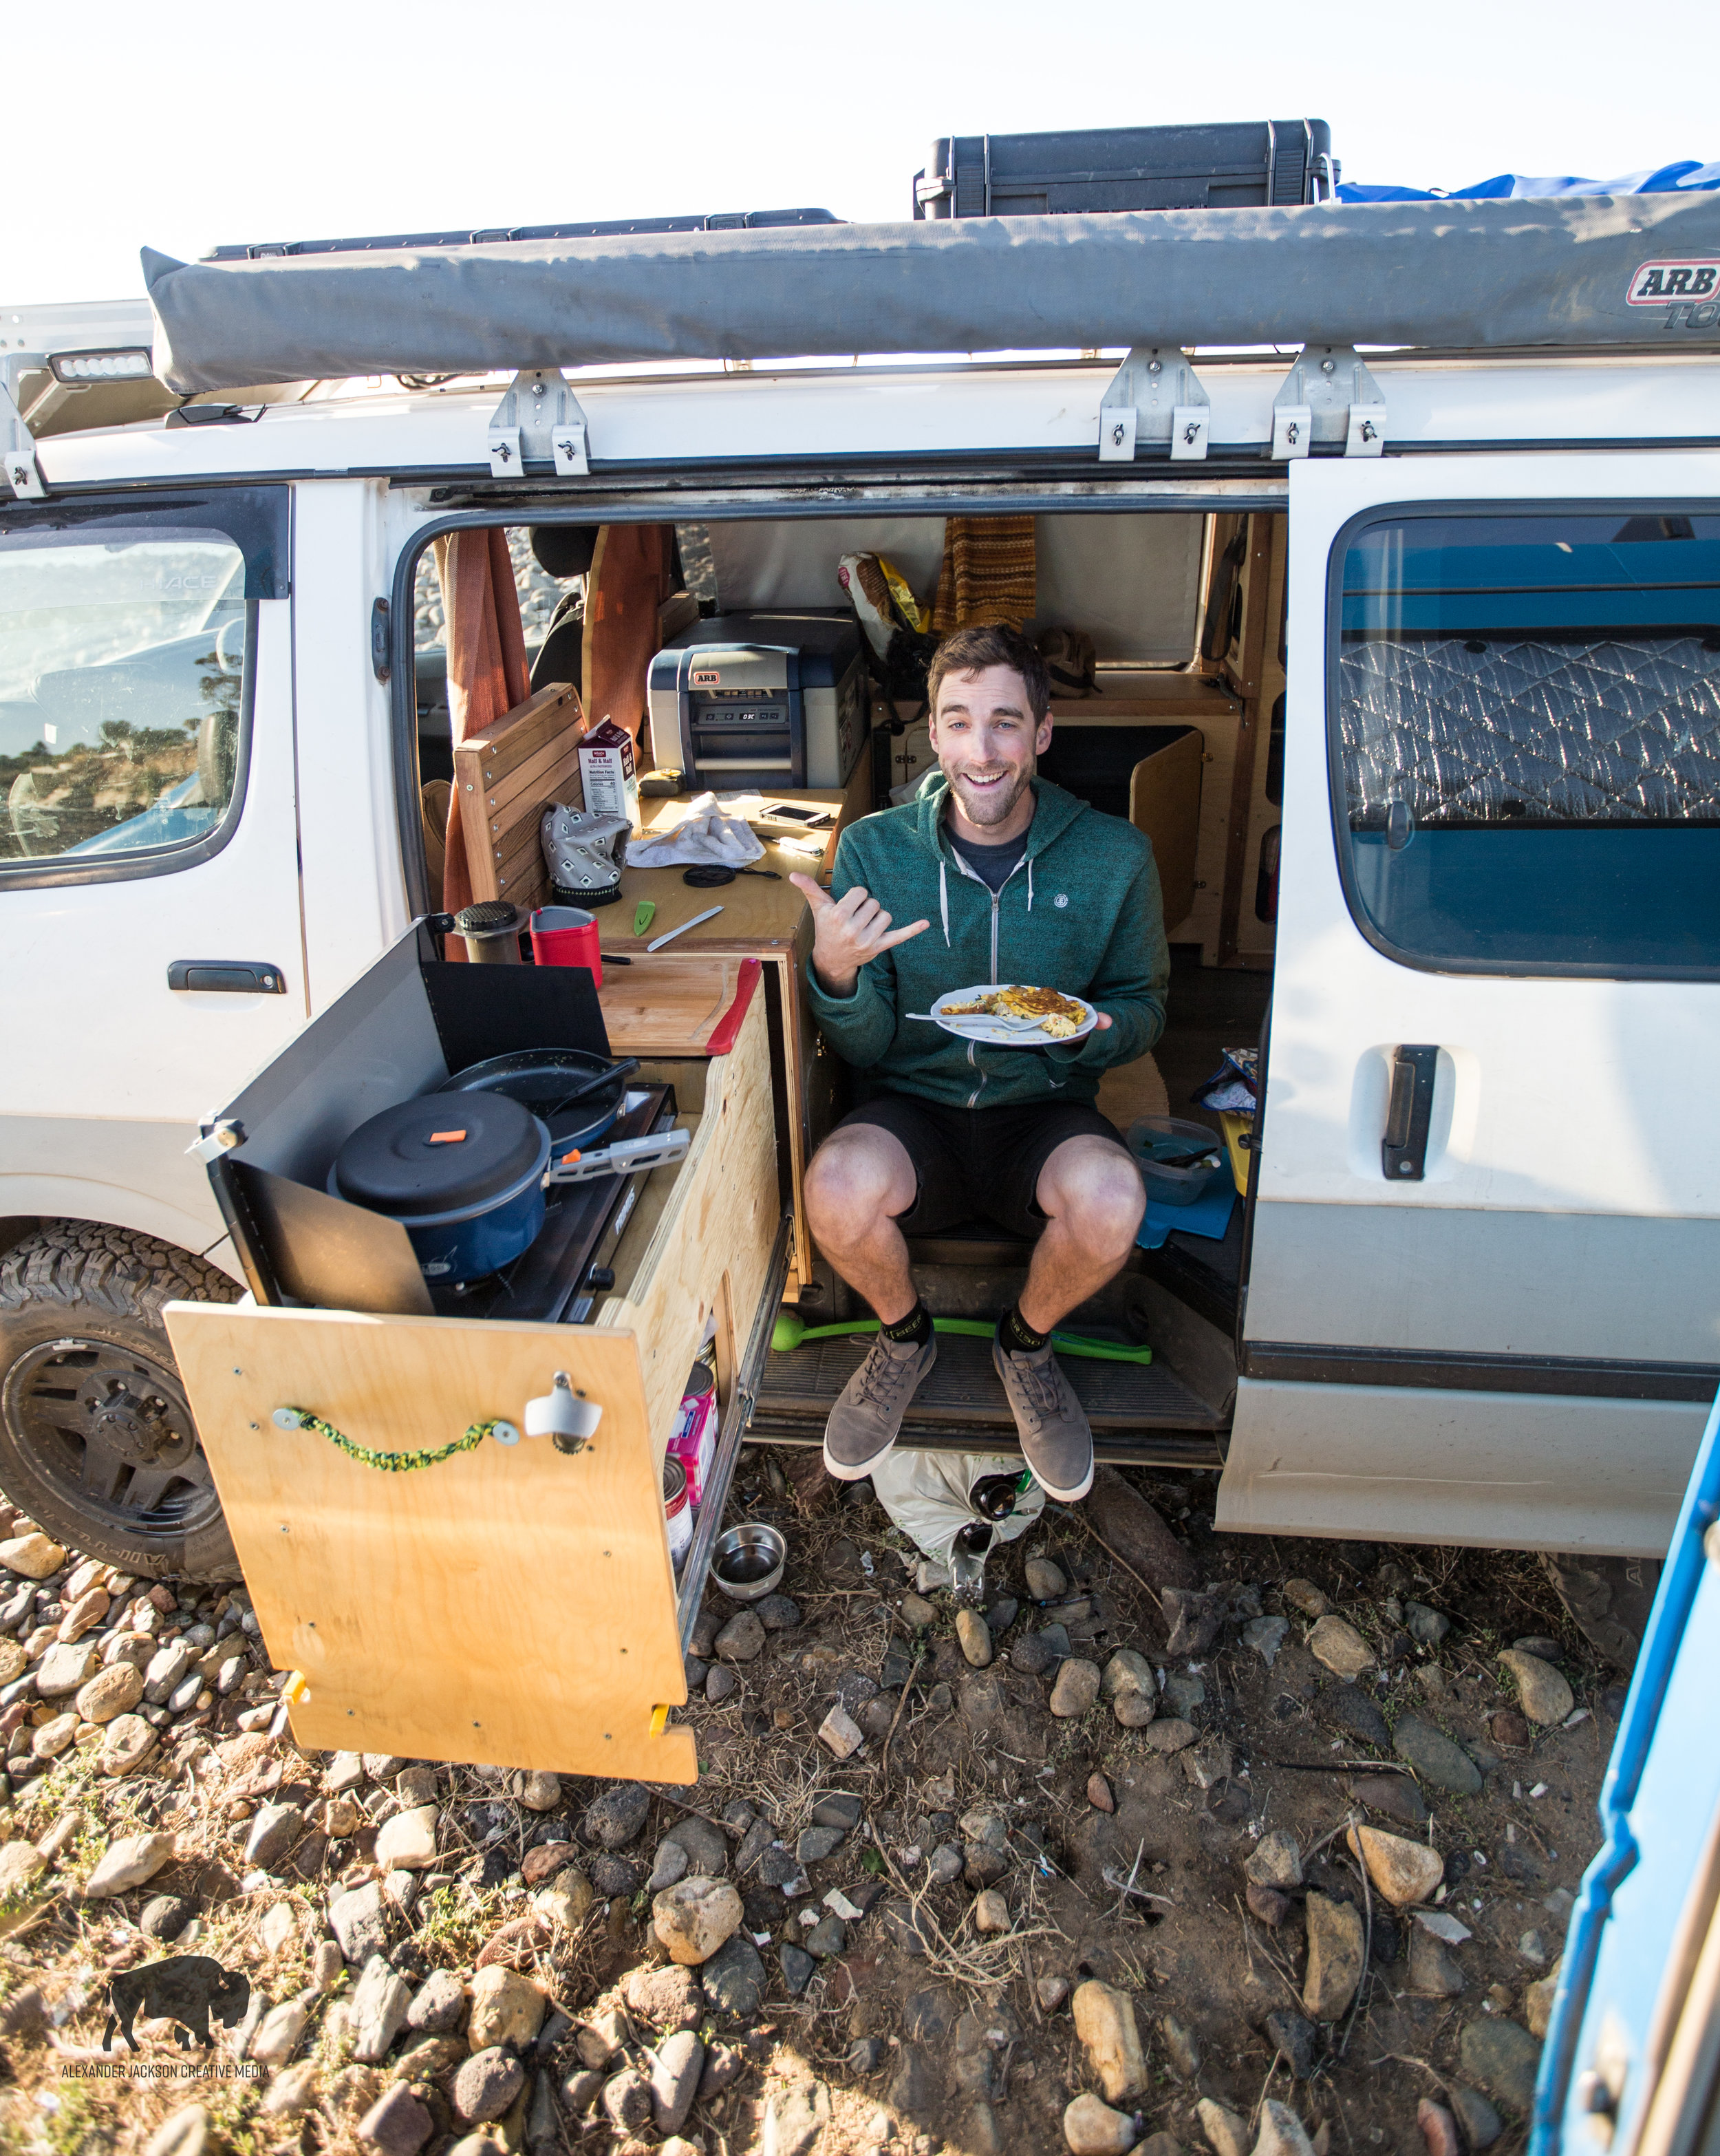 vanlife 17 (17 of 21).jpg